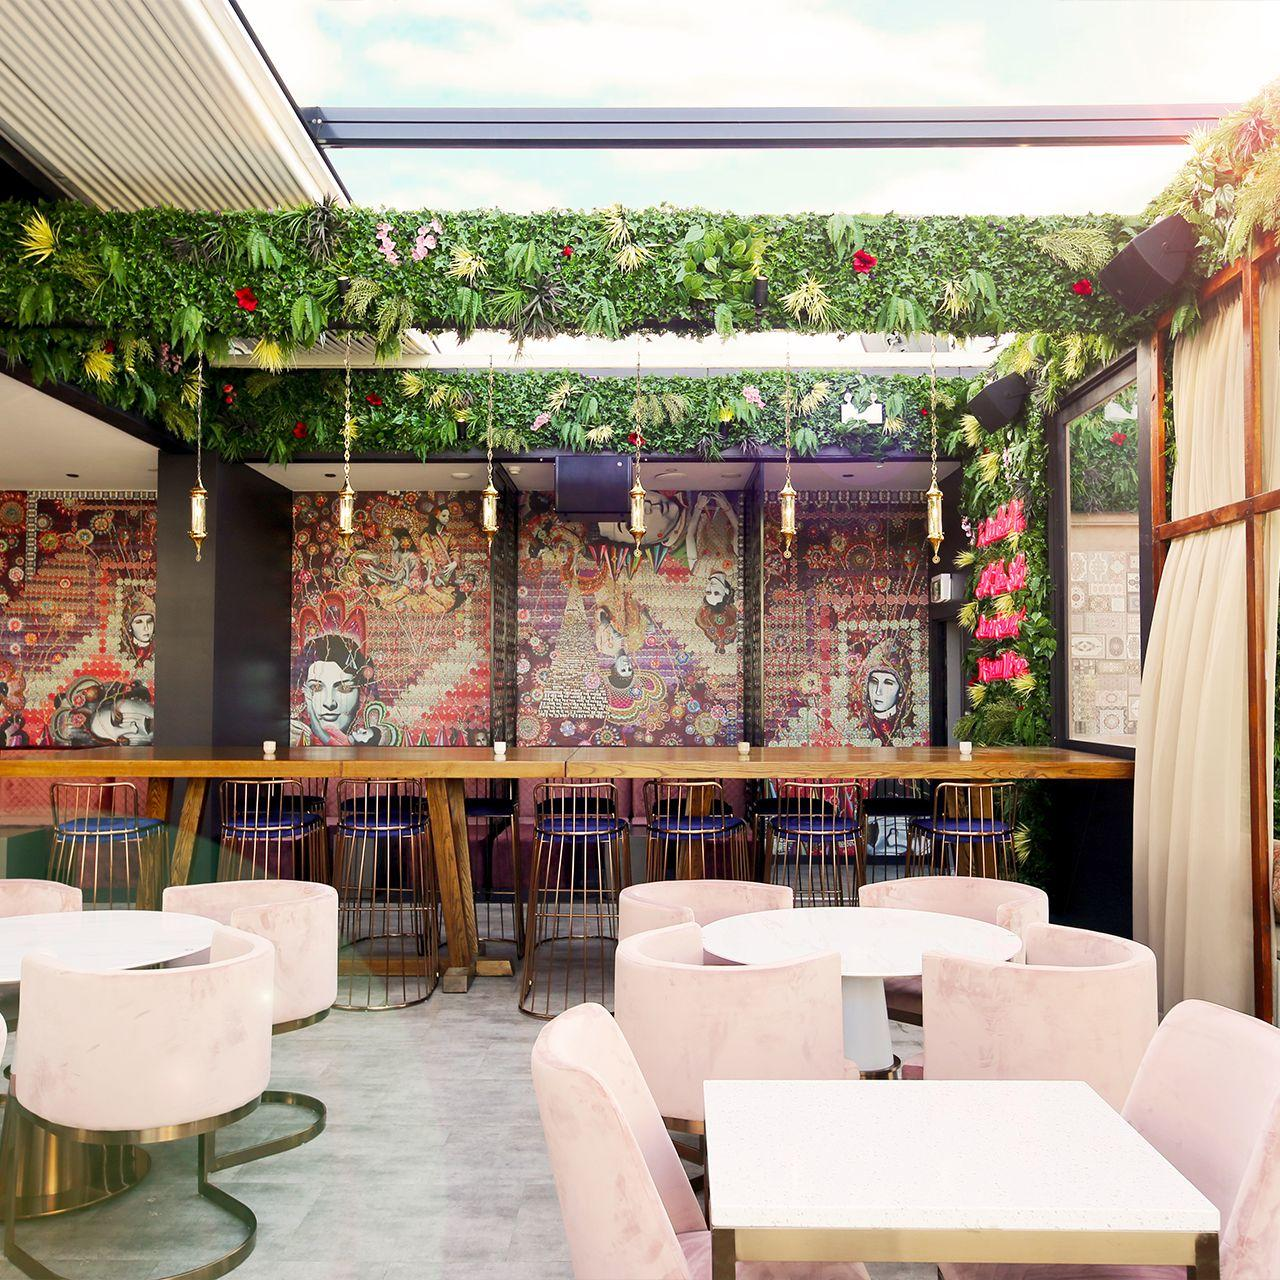 Dirty Sultan retractable room, providing indoor and outdoor dining